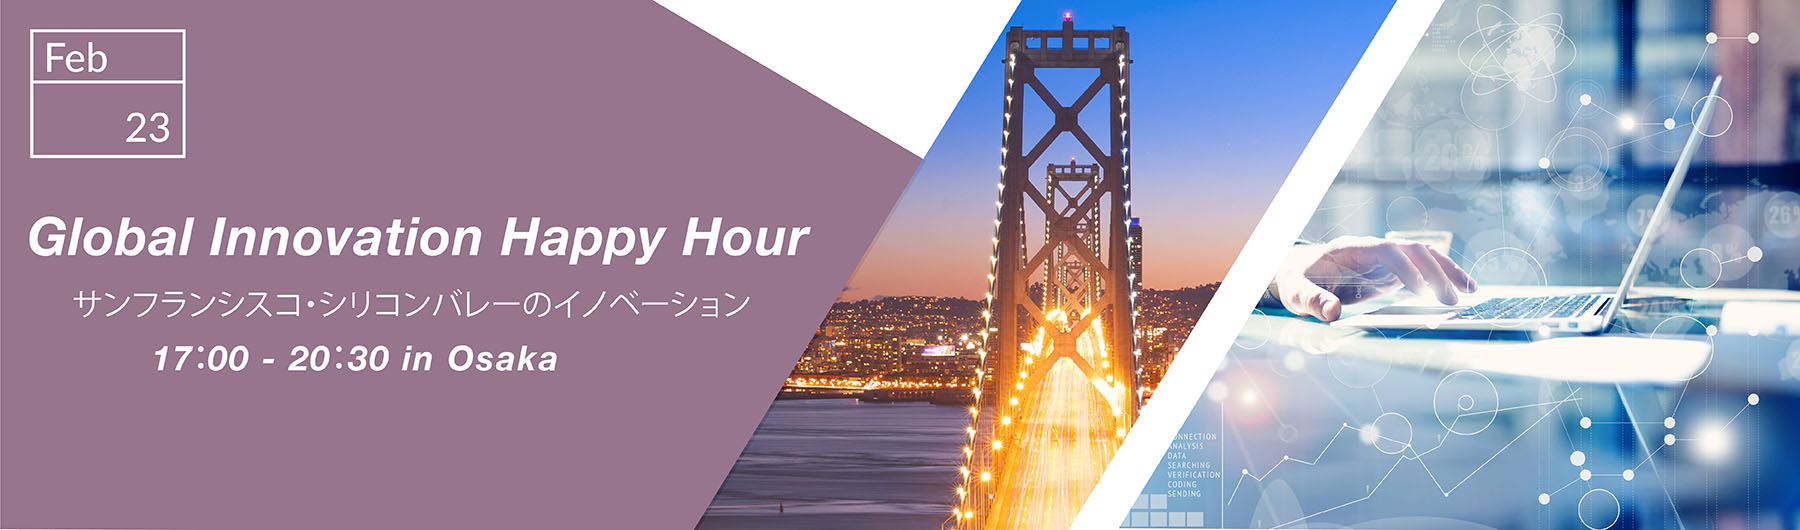 Global Innovation Happy Hour in Osaka (2/23)